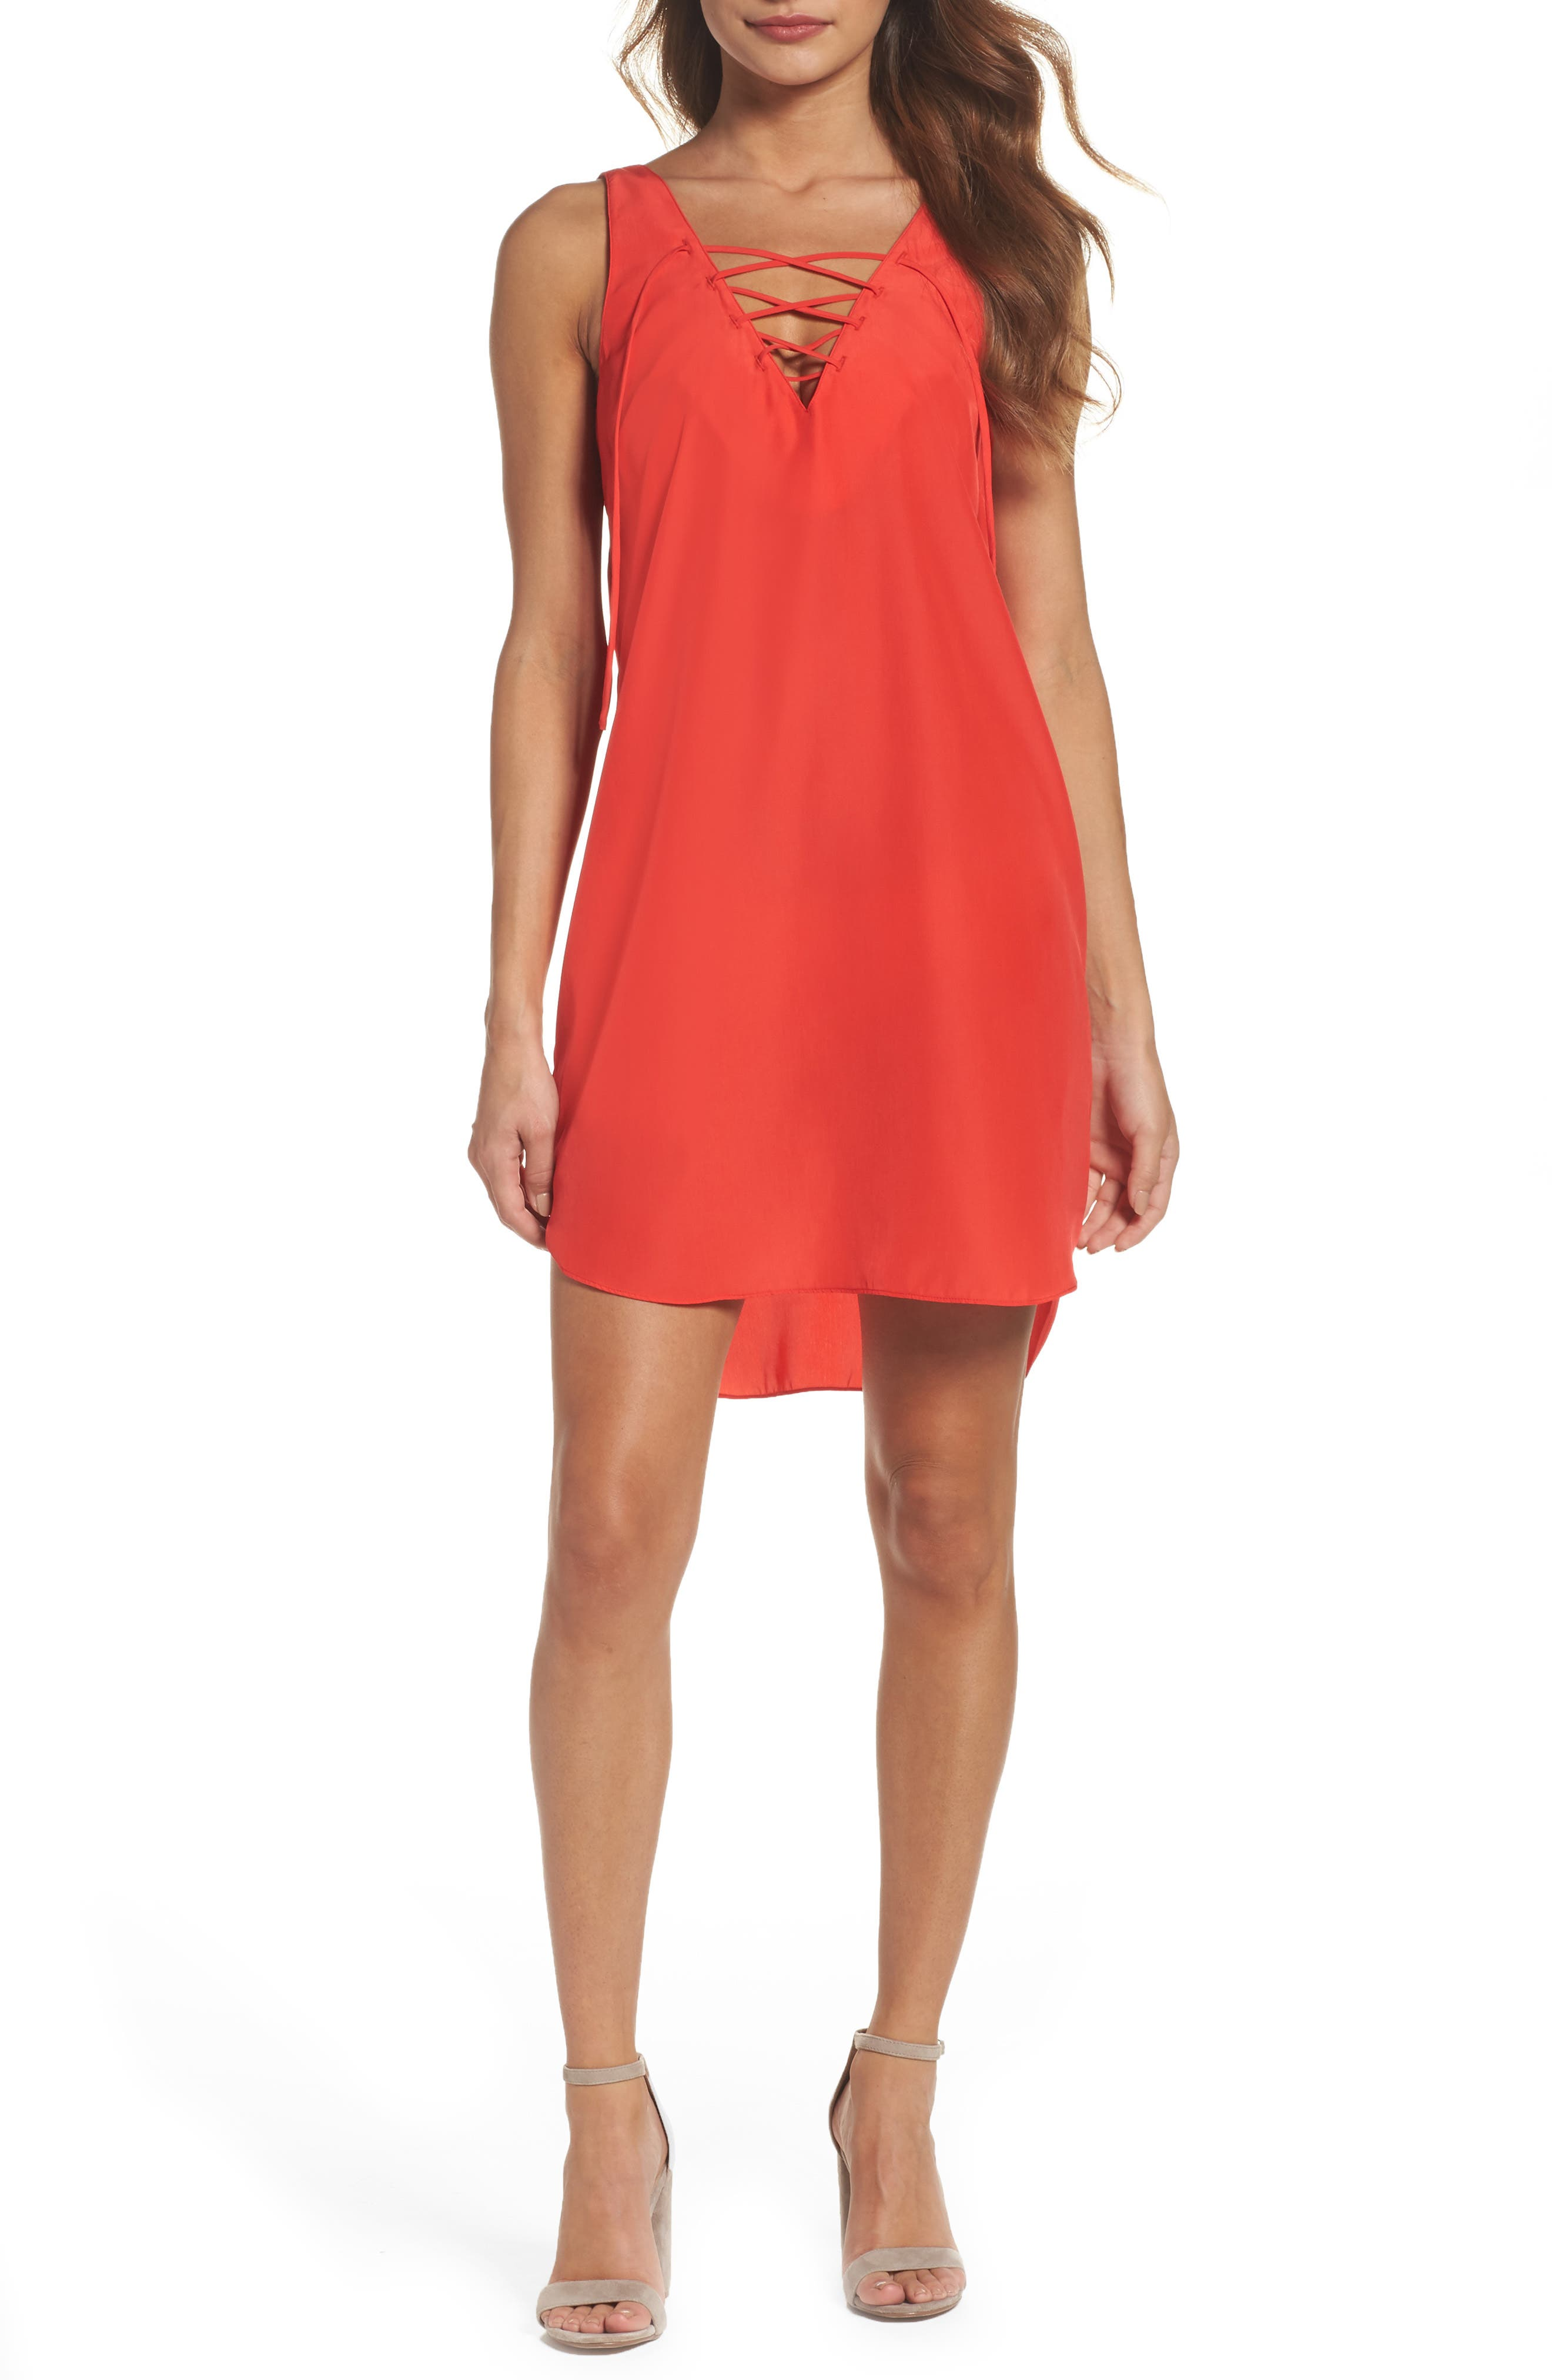 A by Amanda Rivington A-Line Dress